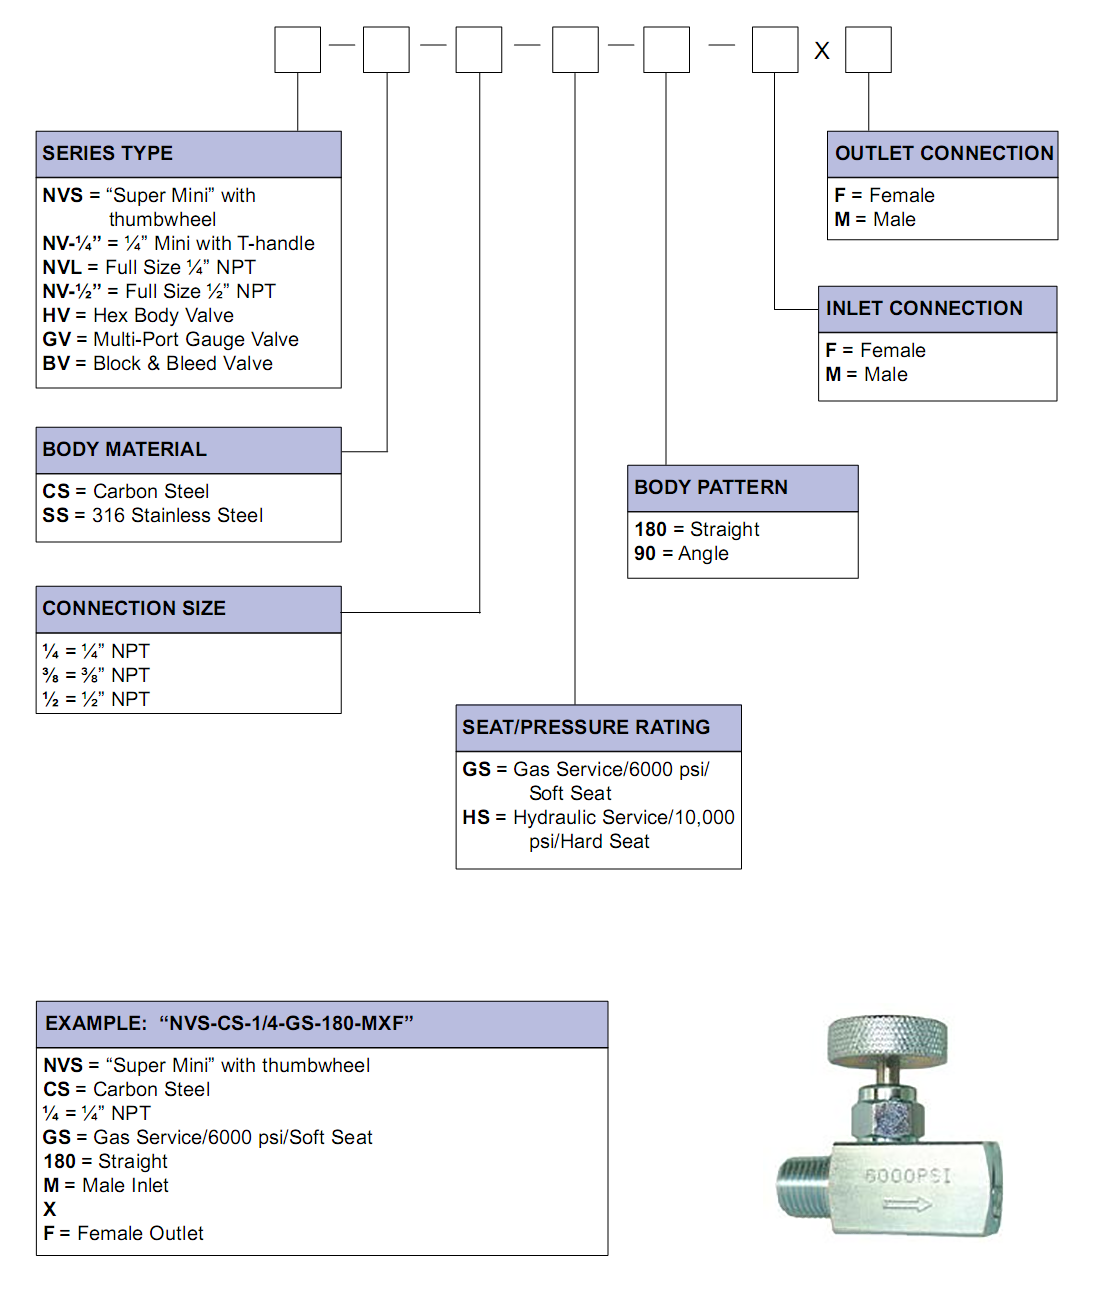 needle-valve-part-numbering-system